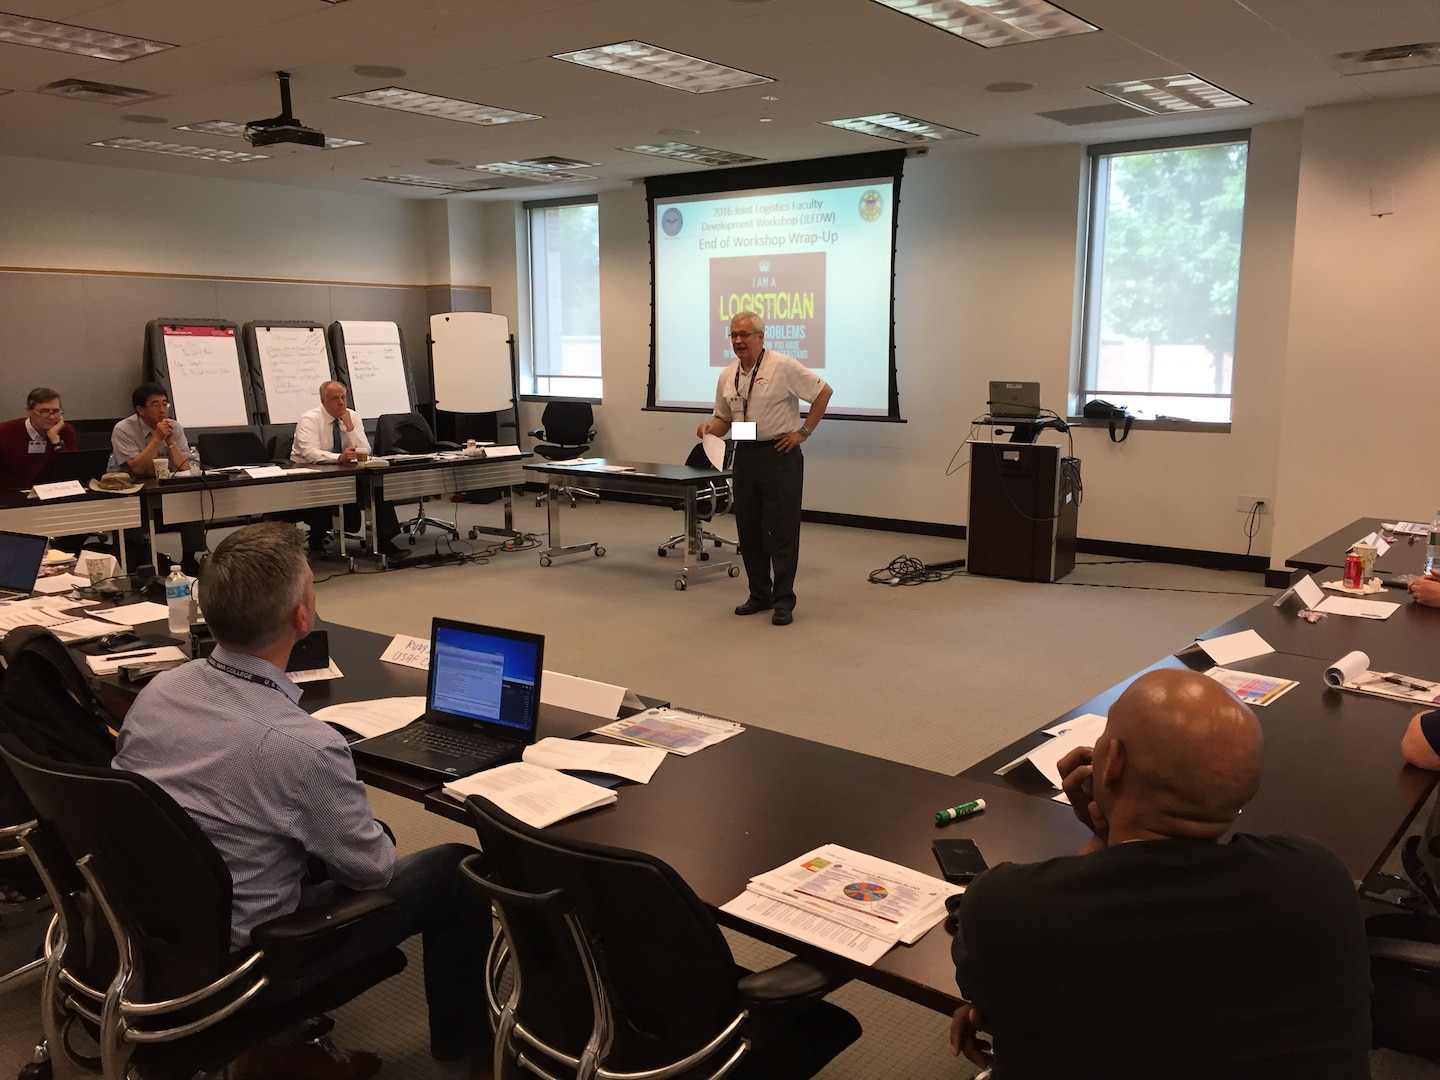 Lt Gen (Ret) Chris Kelly, Director of the Center for Joint & Strategic Logistics, gives final guidance to the attendees before the conclusion of the highly successful event.